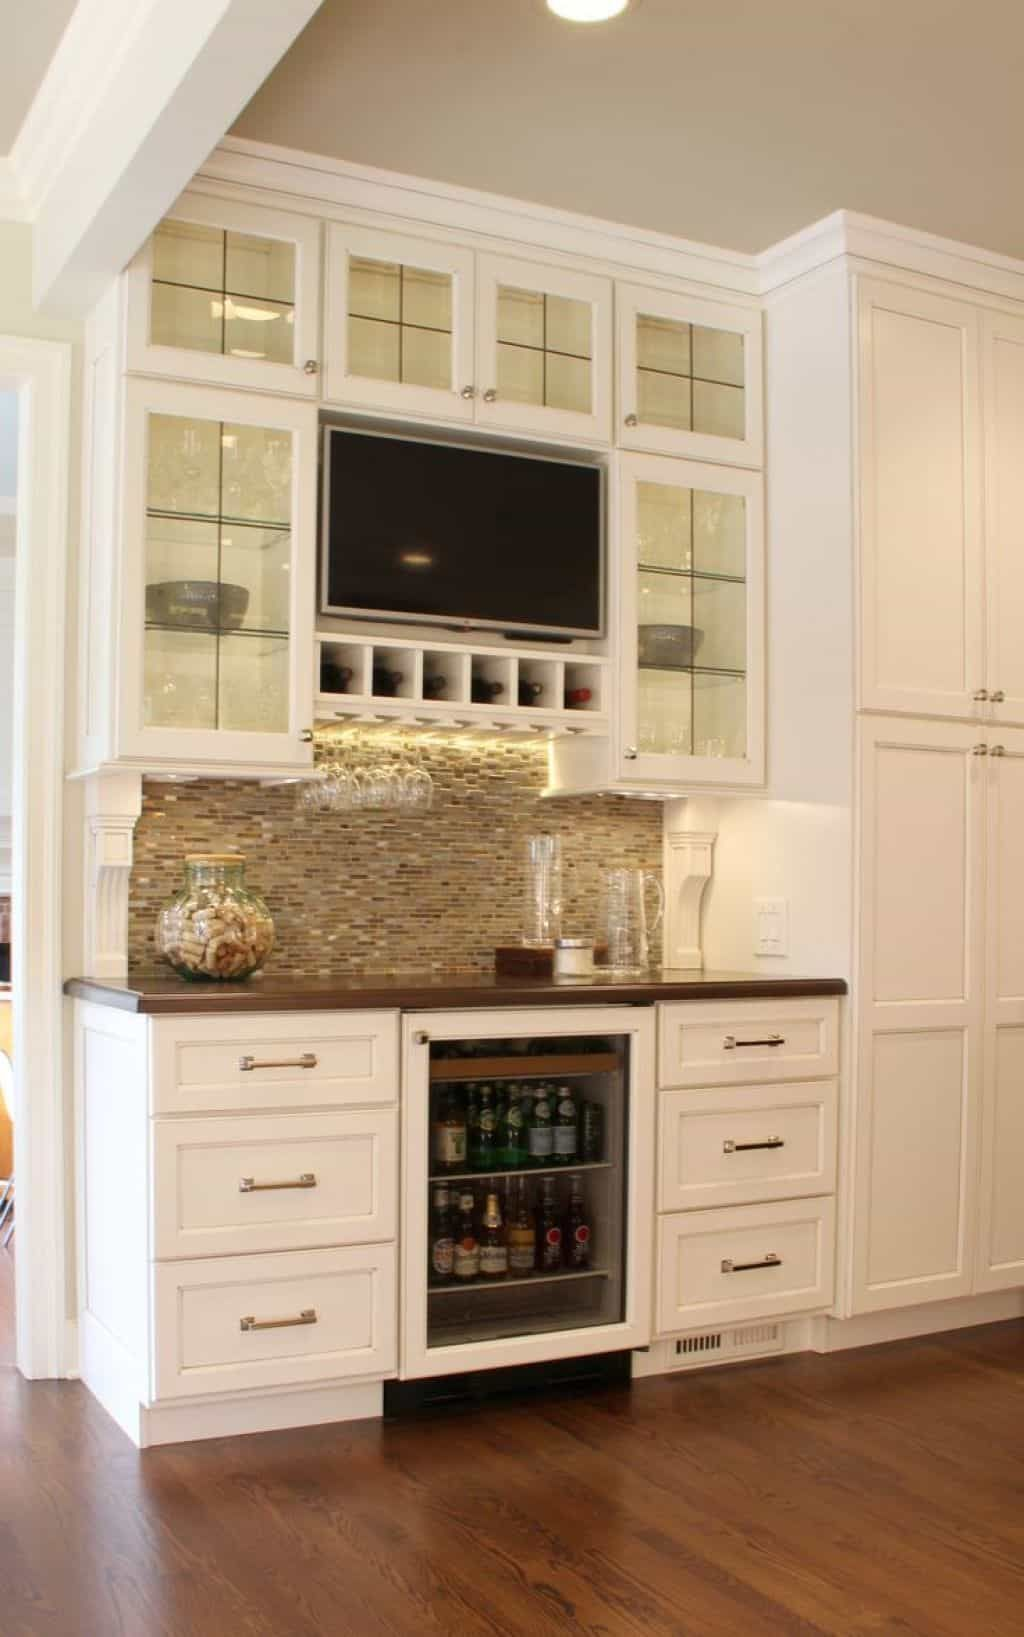 Adding A Kitchen Tv Can Be A Great Idea Tv In Kitchen Kitchen Remodel Kitchen Design Color